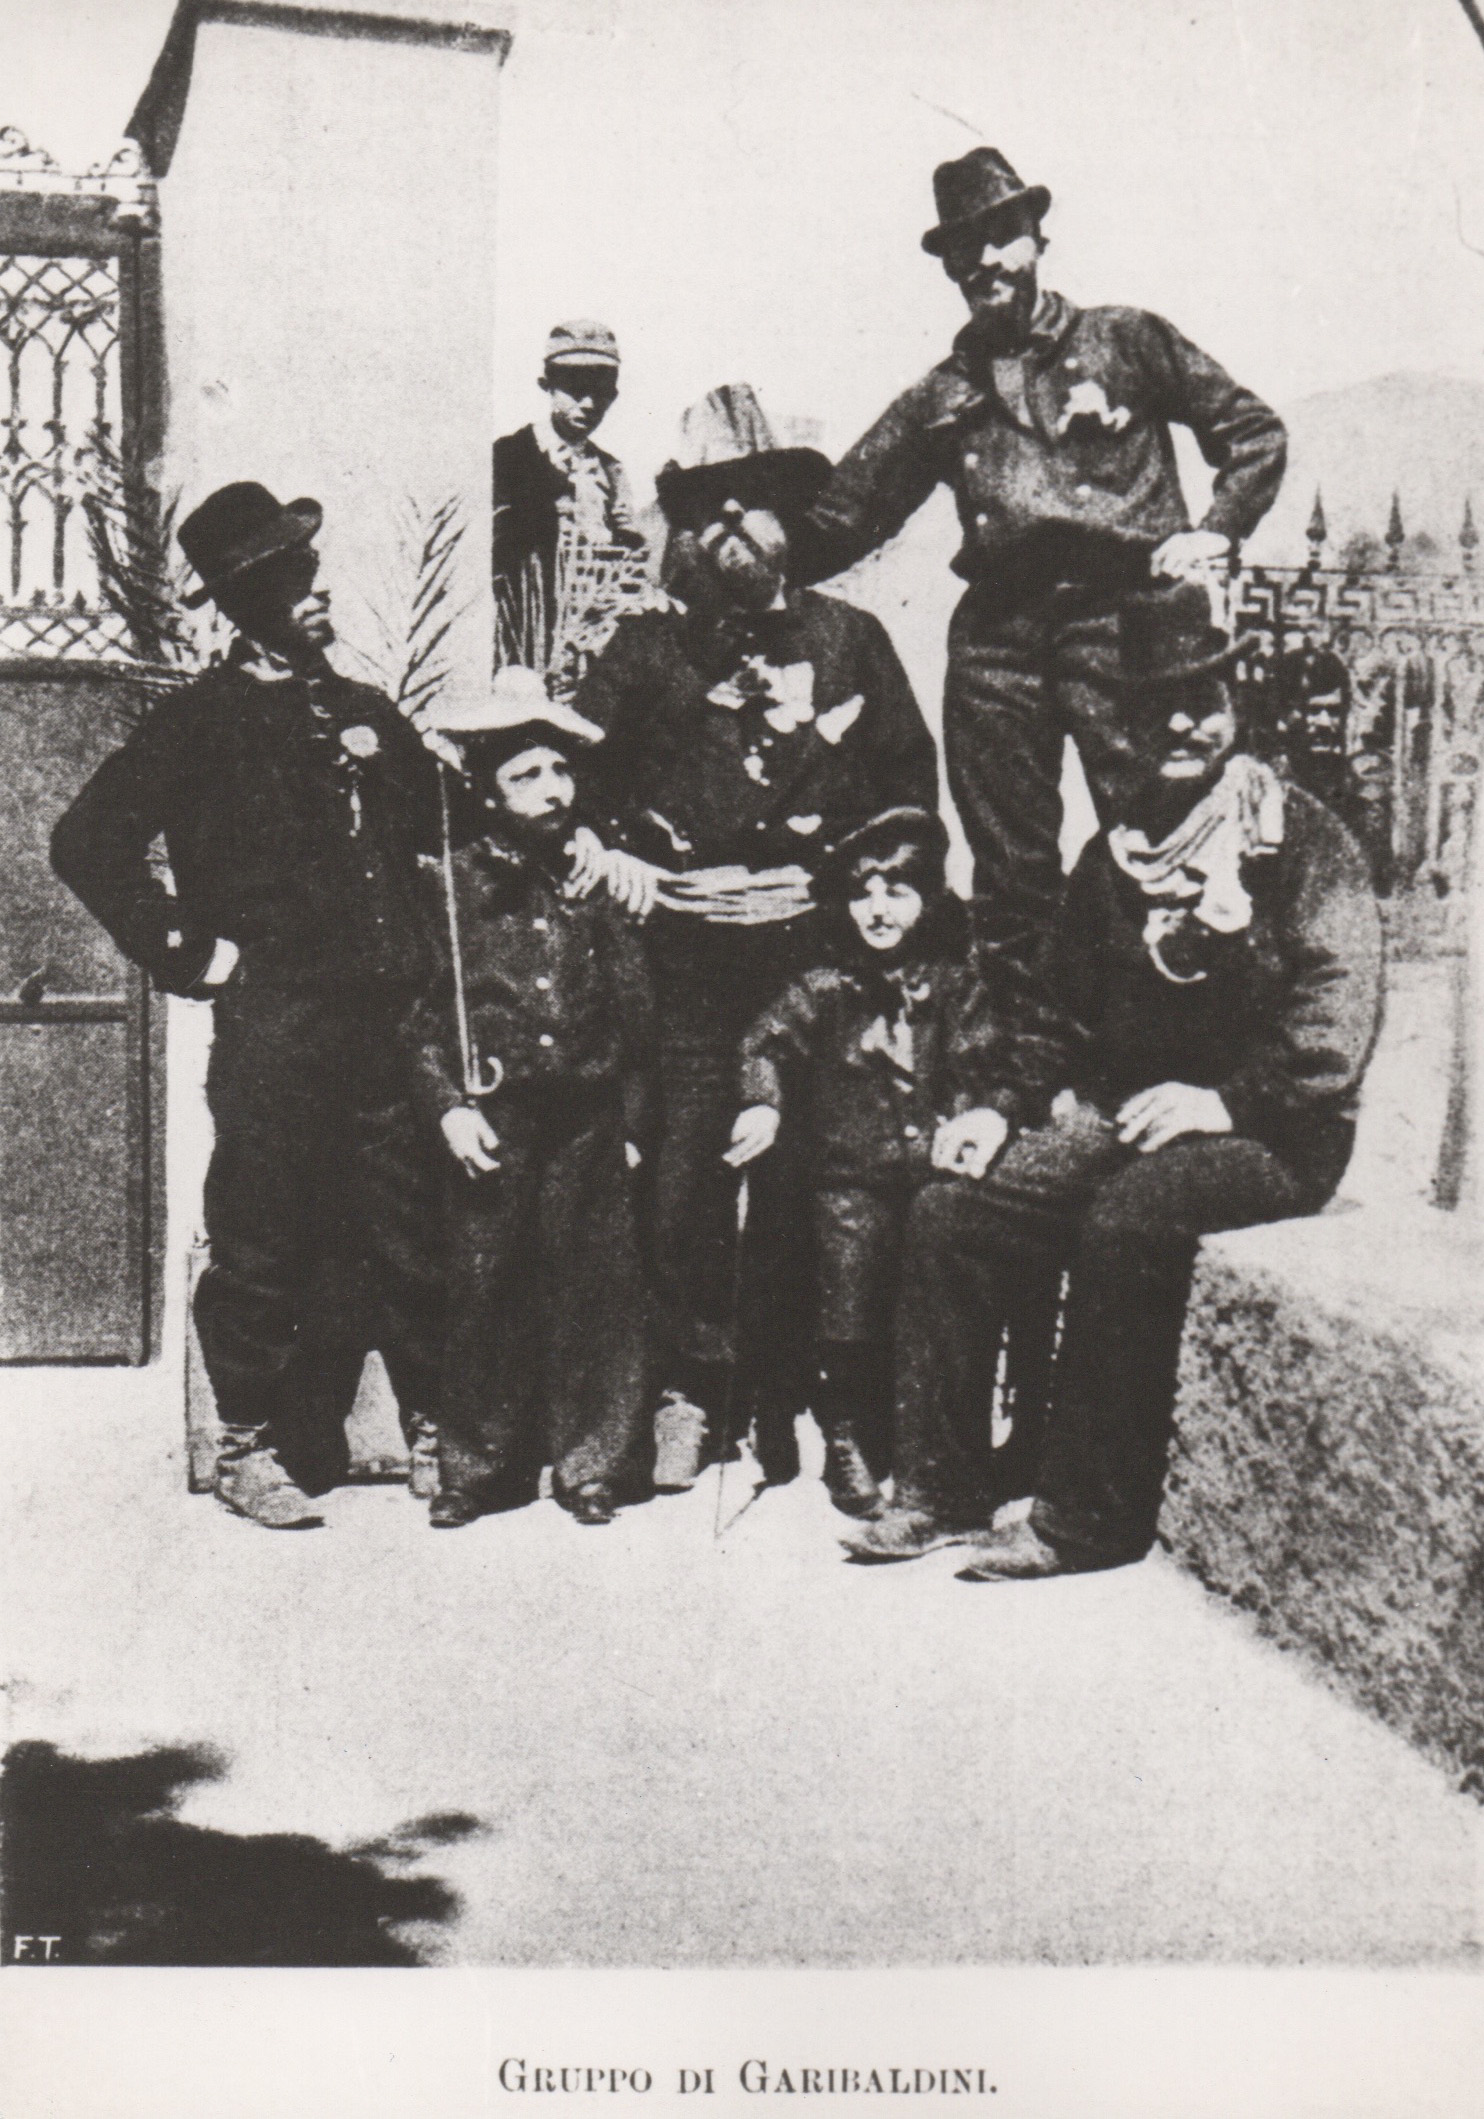 The de Chirico brothers in Volos with a group of Garibaldi's soldiers, 1896